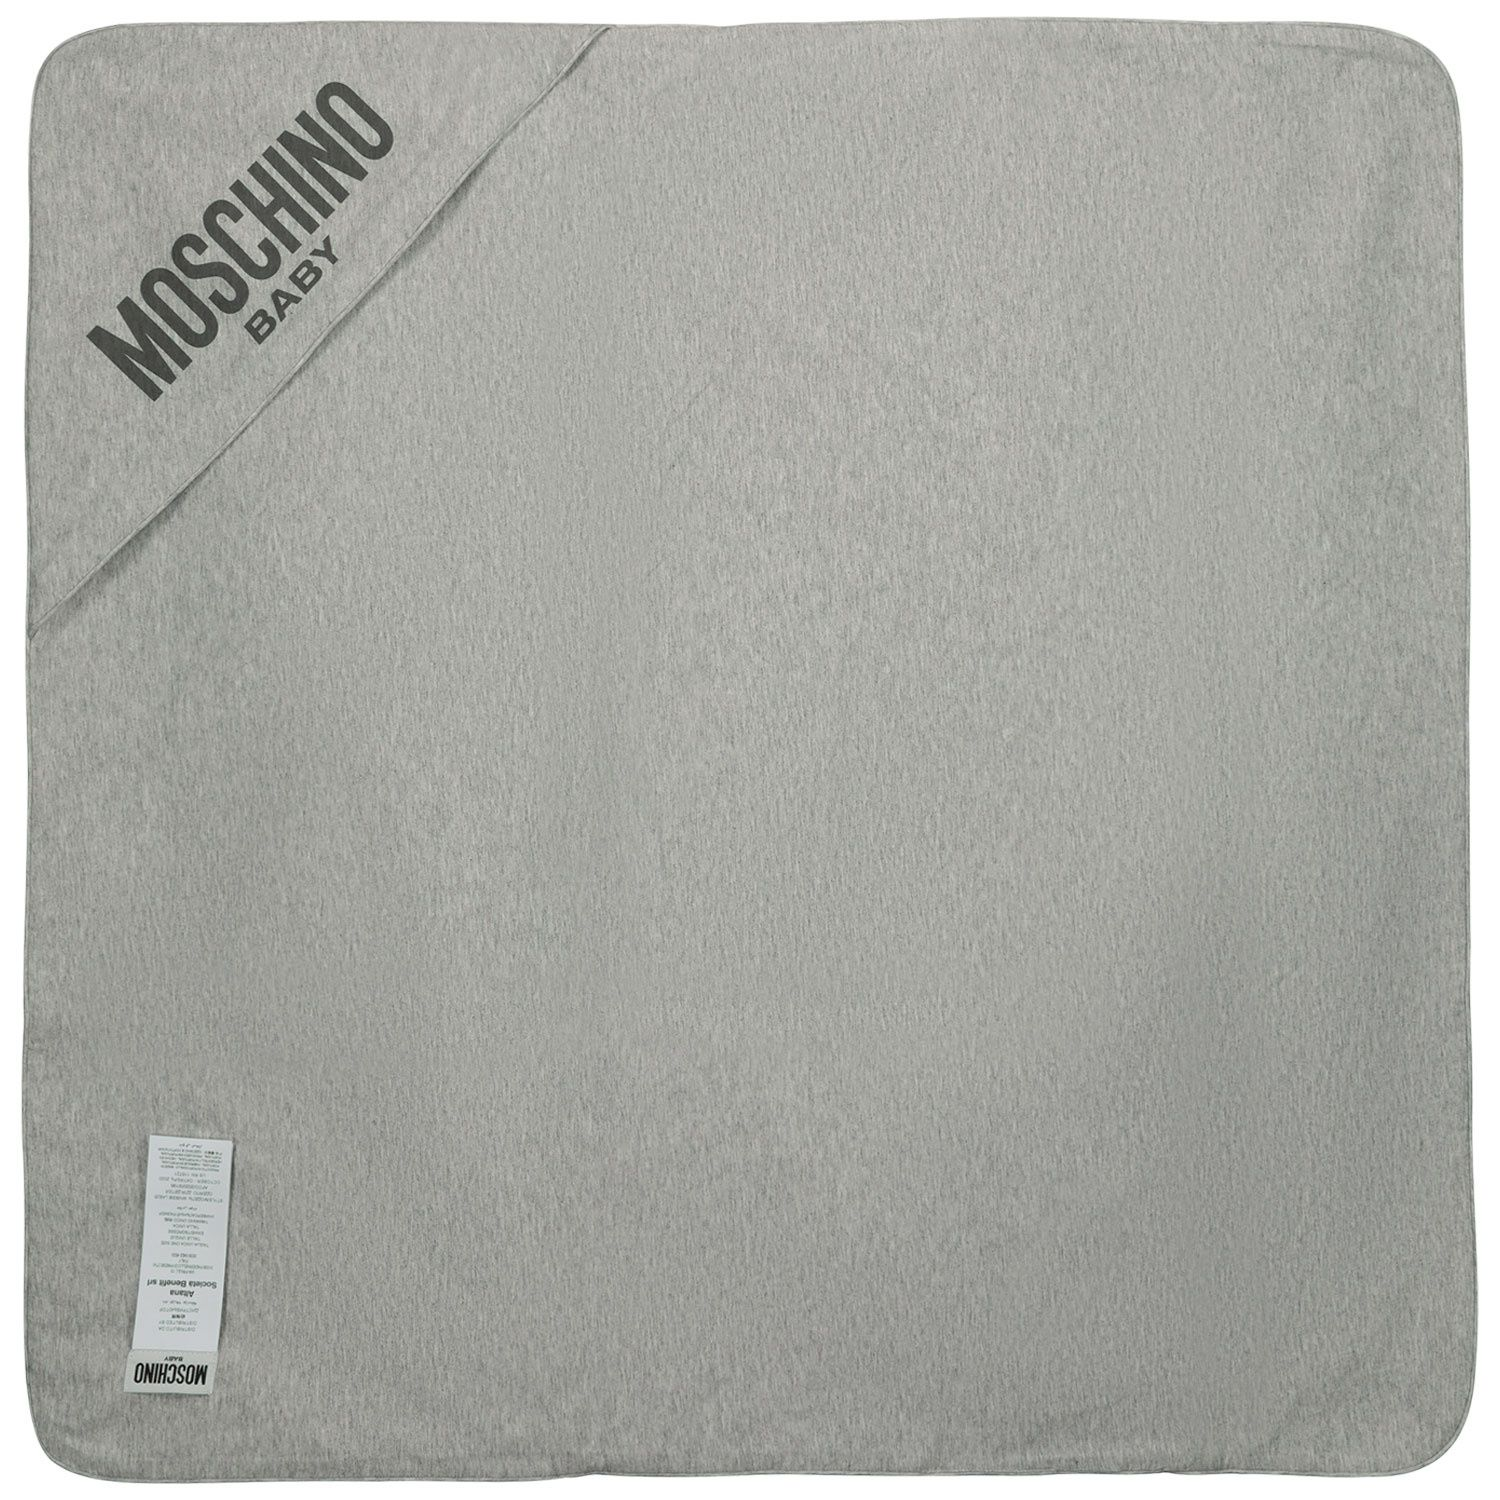 Picture of Moschino MNB006 baby accessory grey